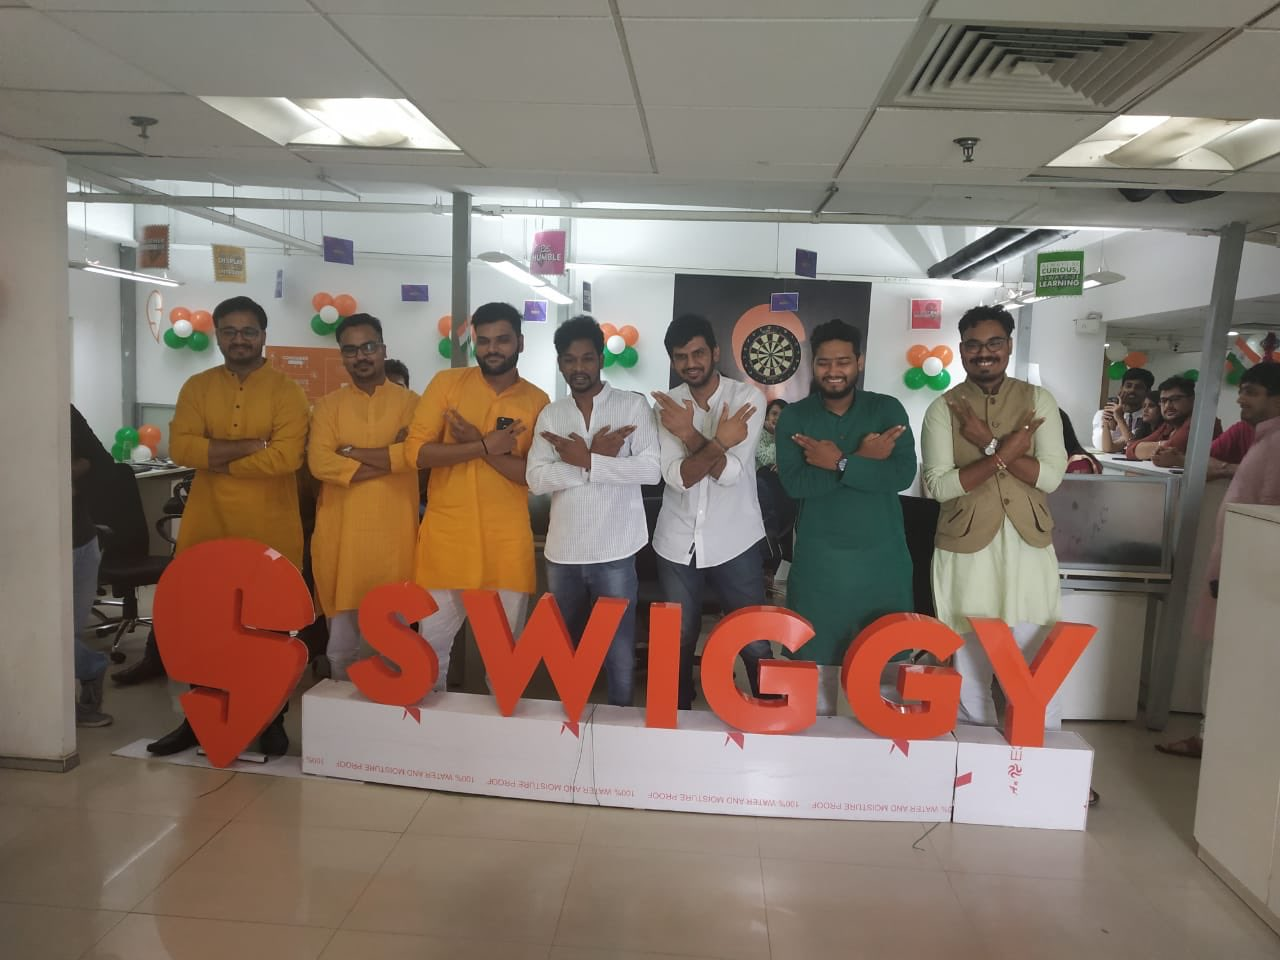 """We Are Swiggy on Twitter: """"Here's a sneak-peek of how our offices from across the country is celebrating #IndependenceDay – all dressed in vibrant ethnic attire with pride. How are you celebrating"""